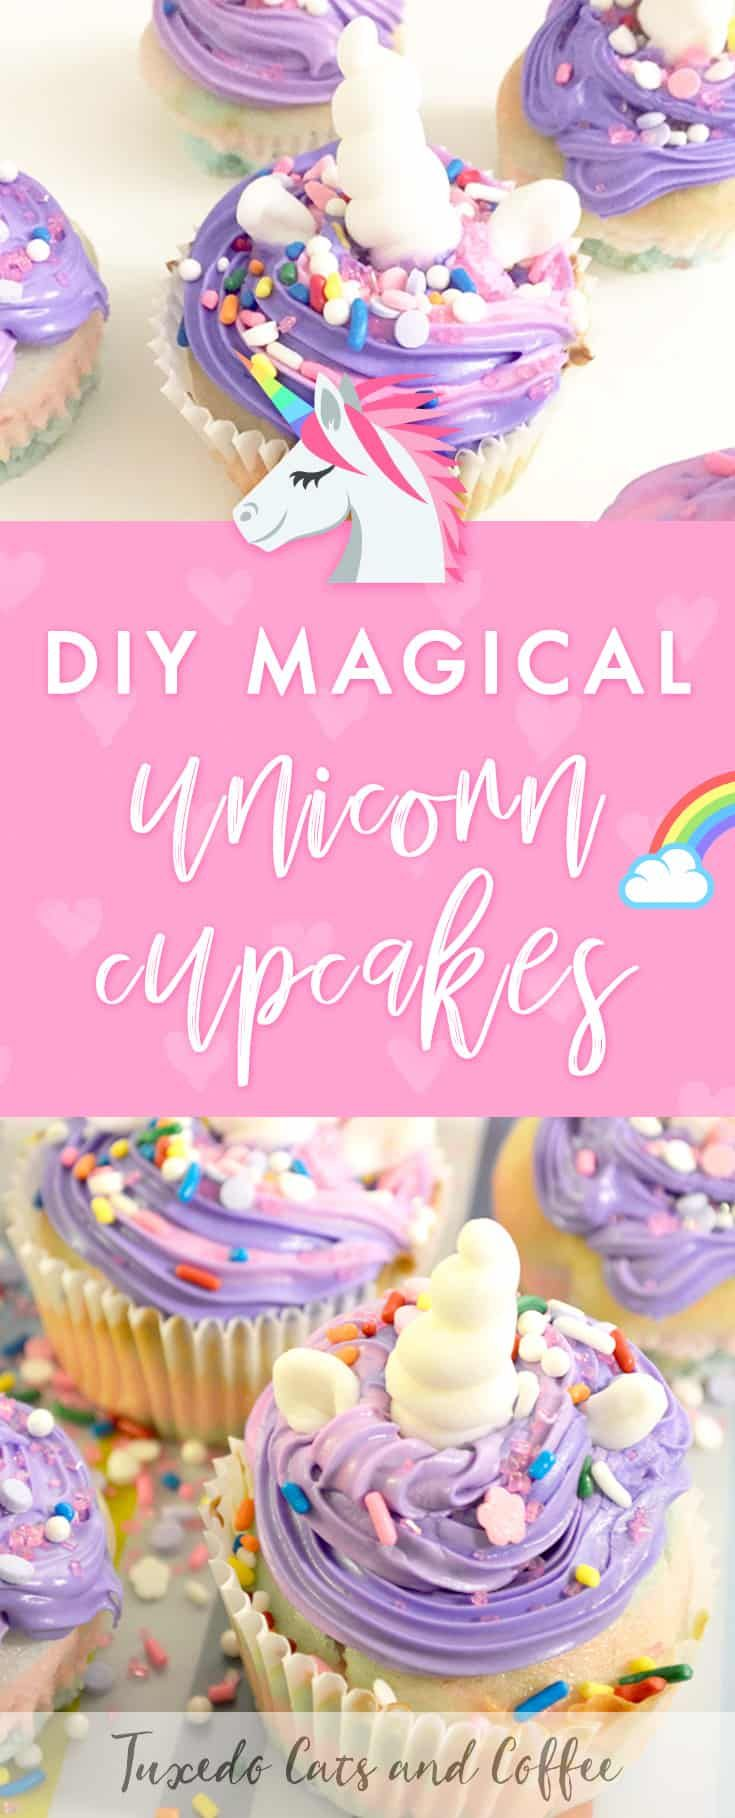 DIY Magical Unicorn Cupcakes - Unicorn cupcakes, Savoury cake, Unicorn desserts, Magic cake, Mini cakes, Diy cupcakes - Do you love unicorns and all the pretty sparkles and bright colors that go along with them  Do you love sweets  Then you'll love these DIY magical unicorn cupcakes that are a fun and magical way to frost and decorate cupcakes!